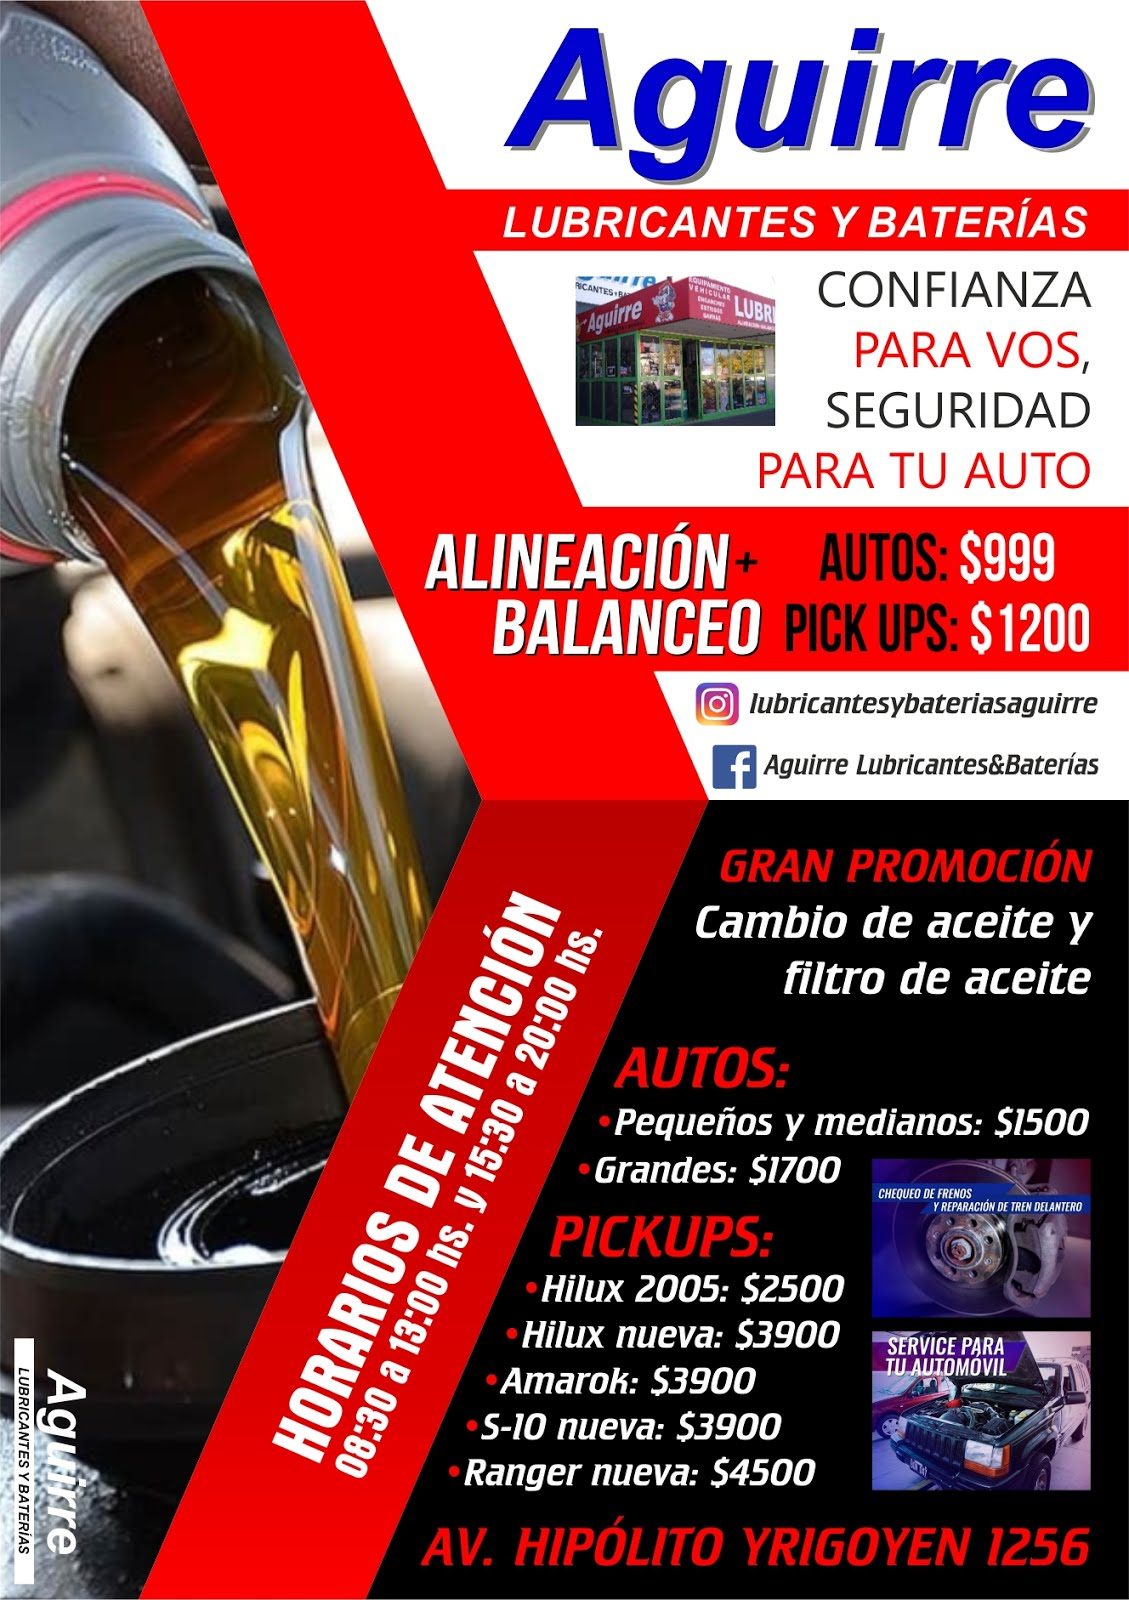 LUBRICANTES AGUIRRE